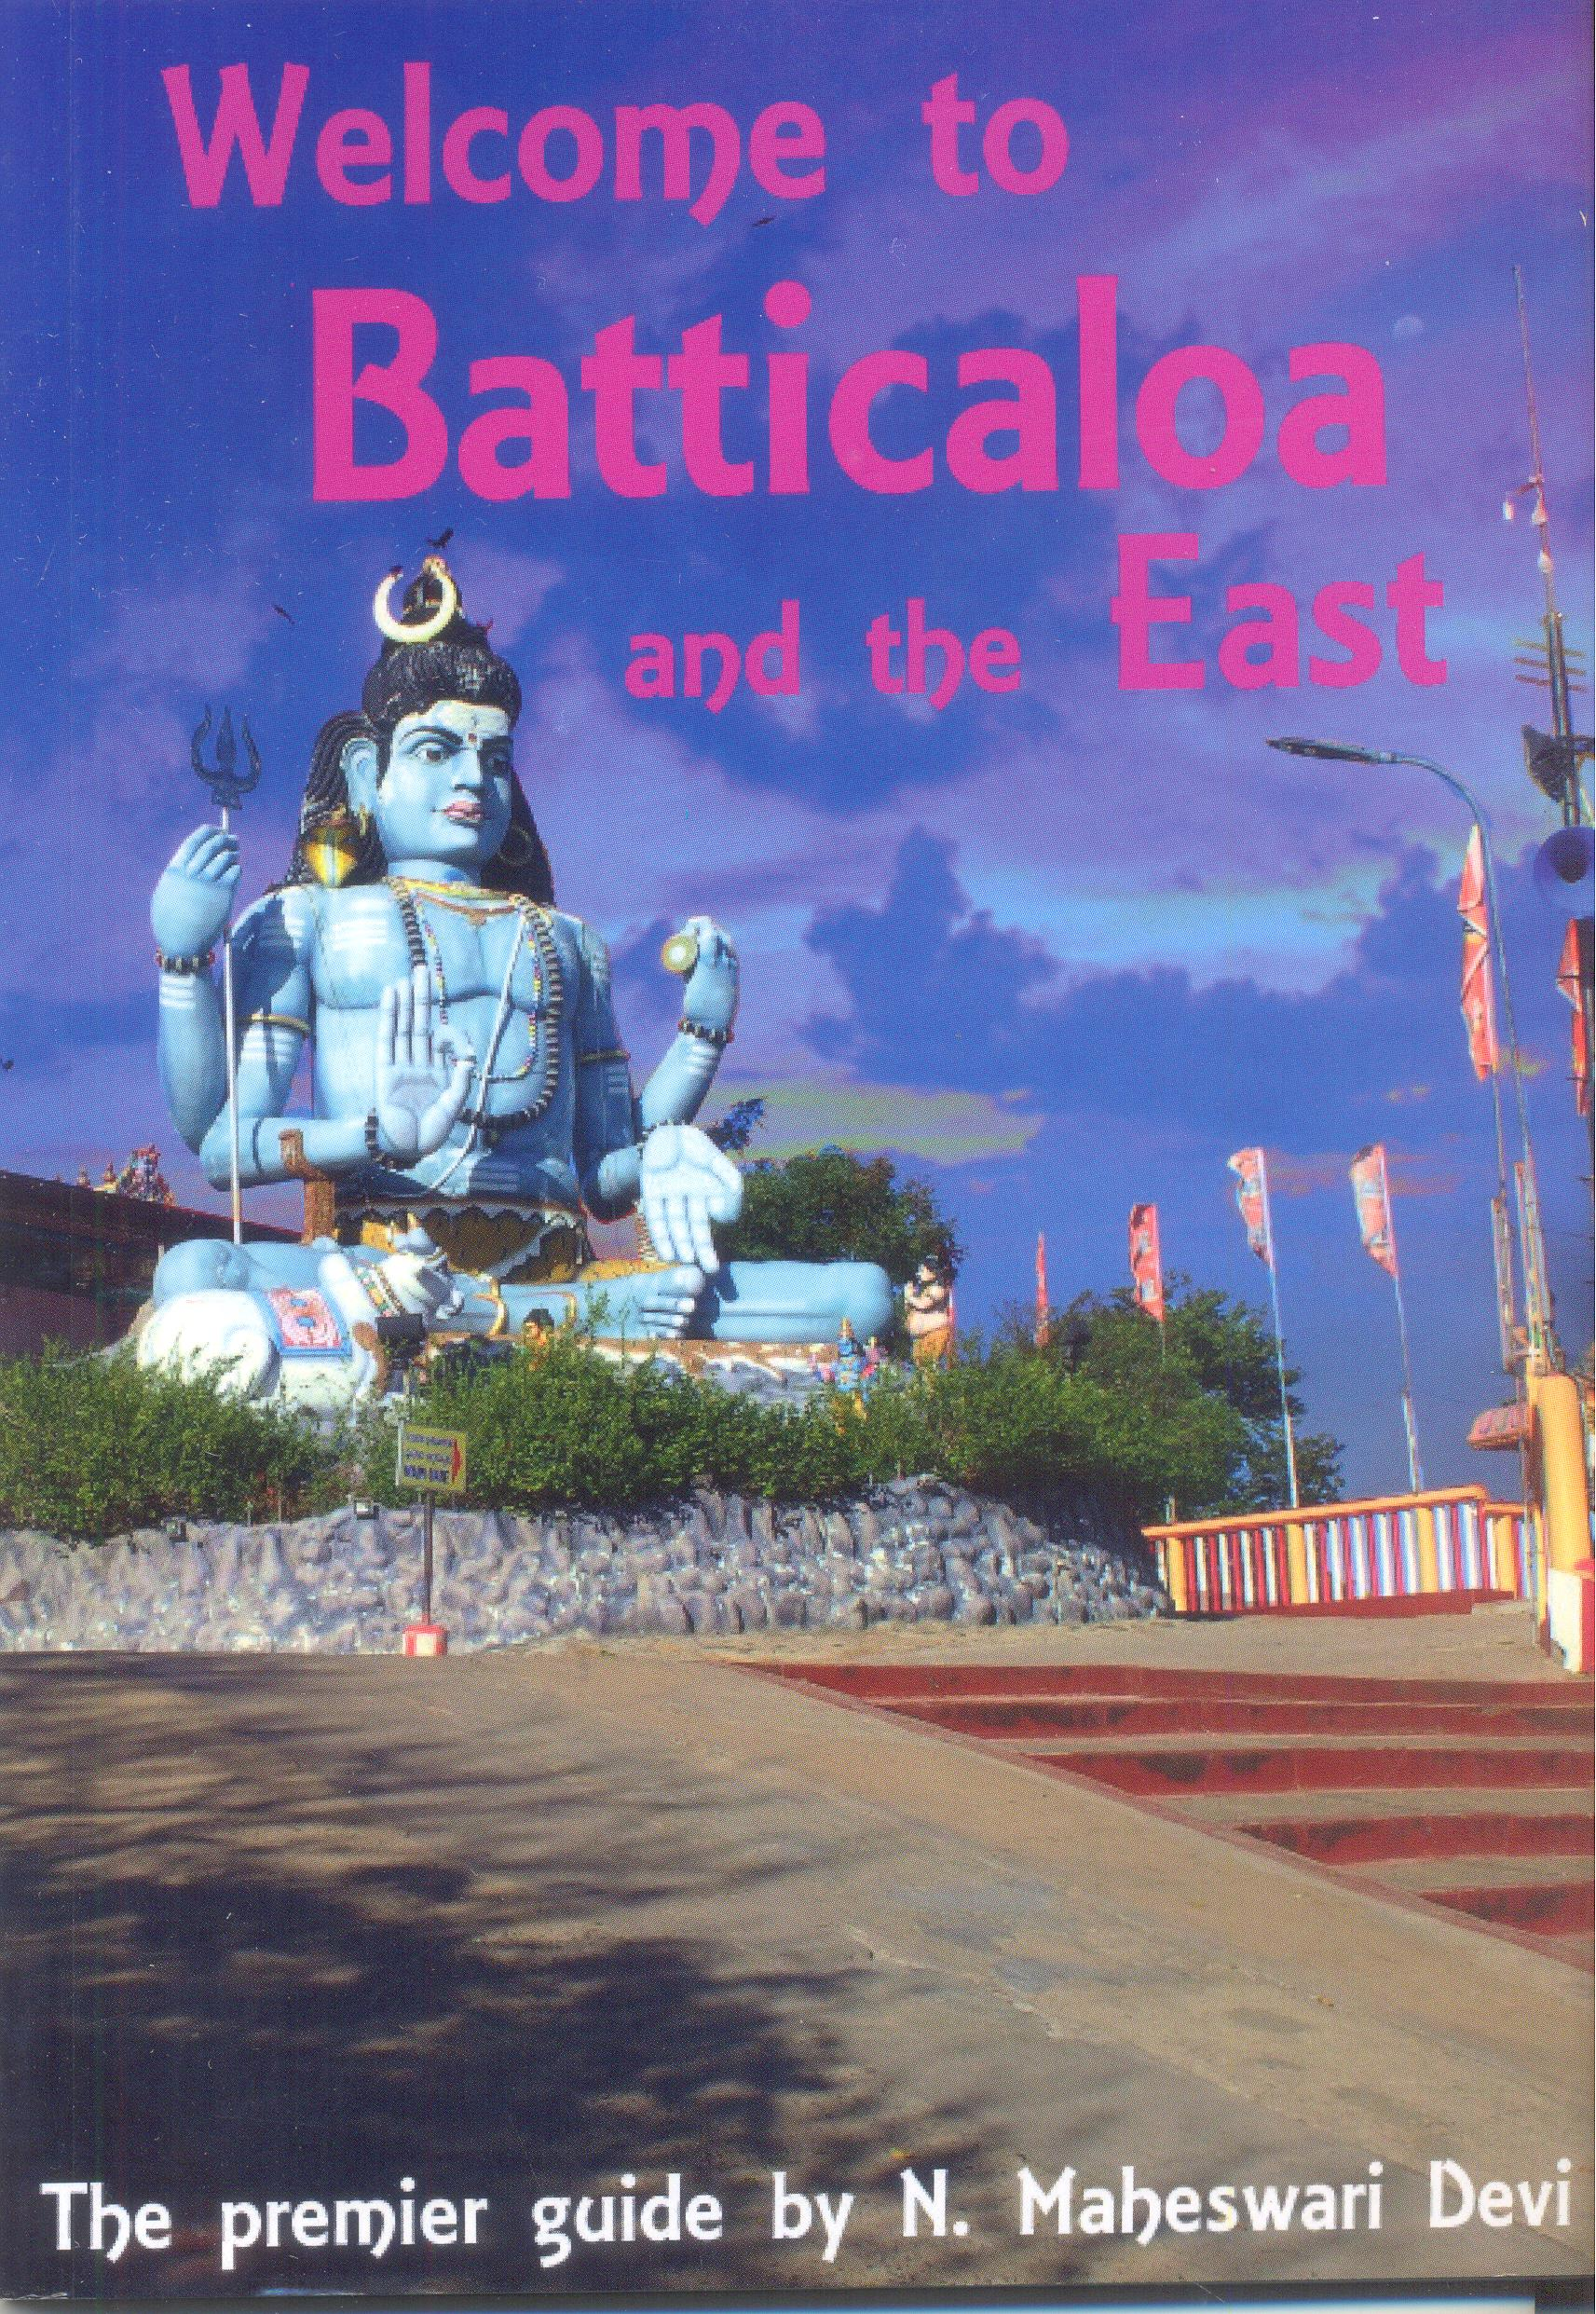 Welcome to Batticaloa and the East